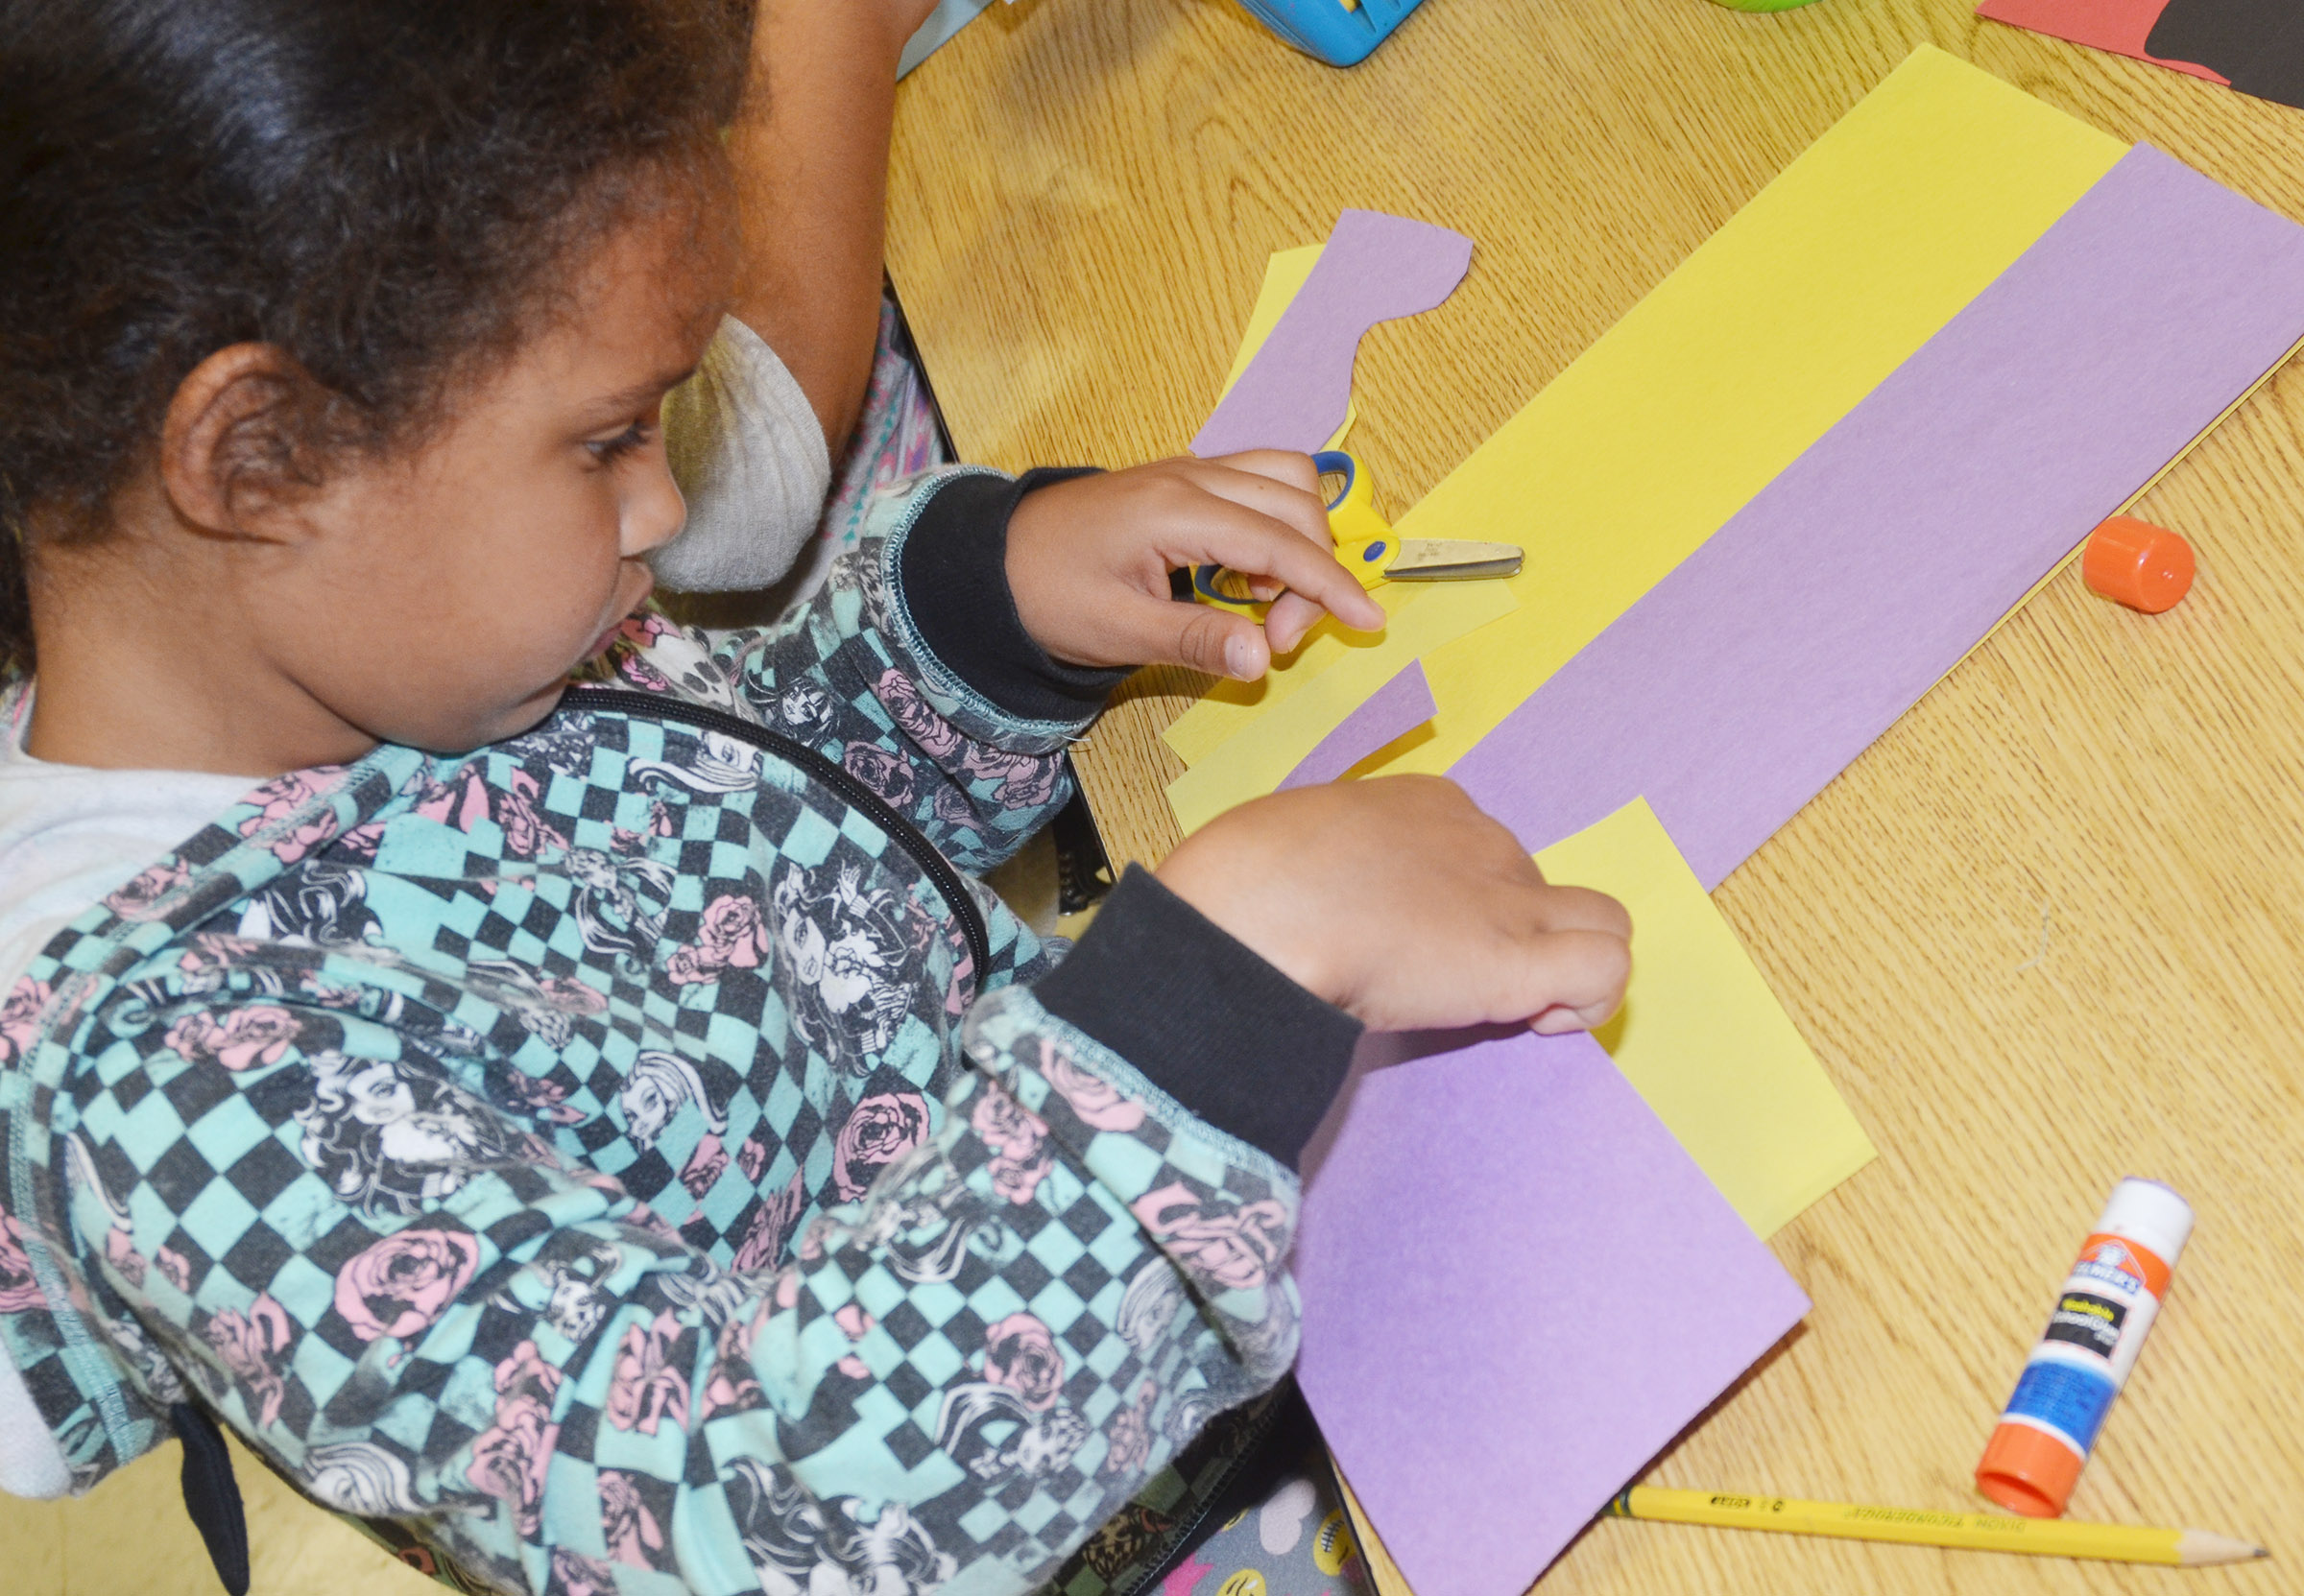 CES second-grader Amani Bridgewater cuts out her free from shapes.